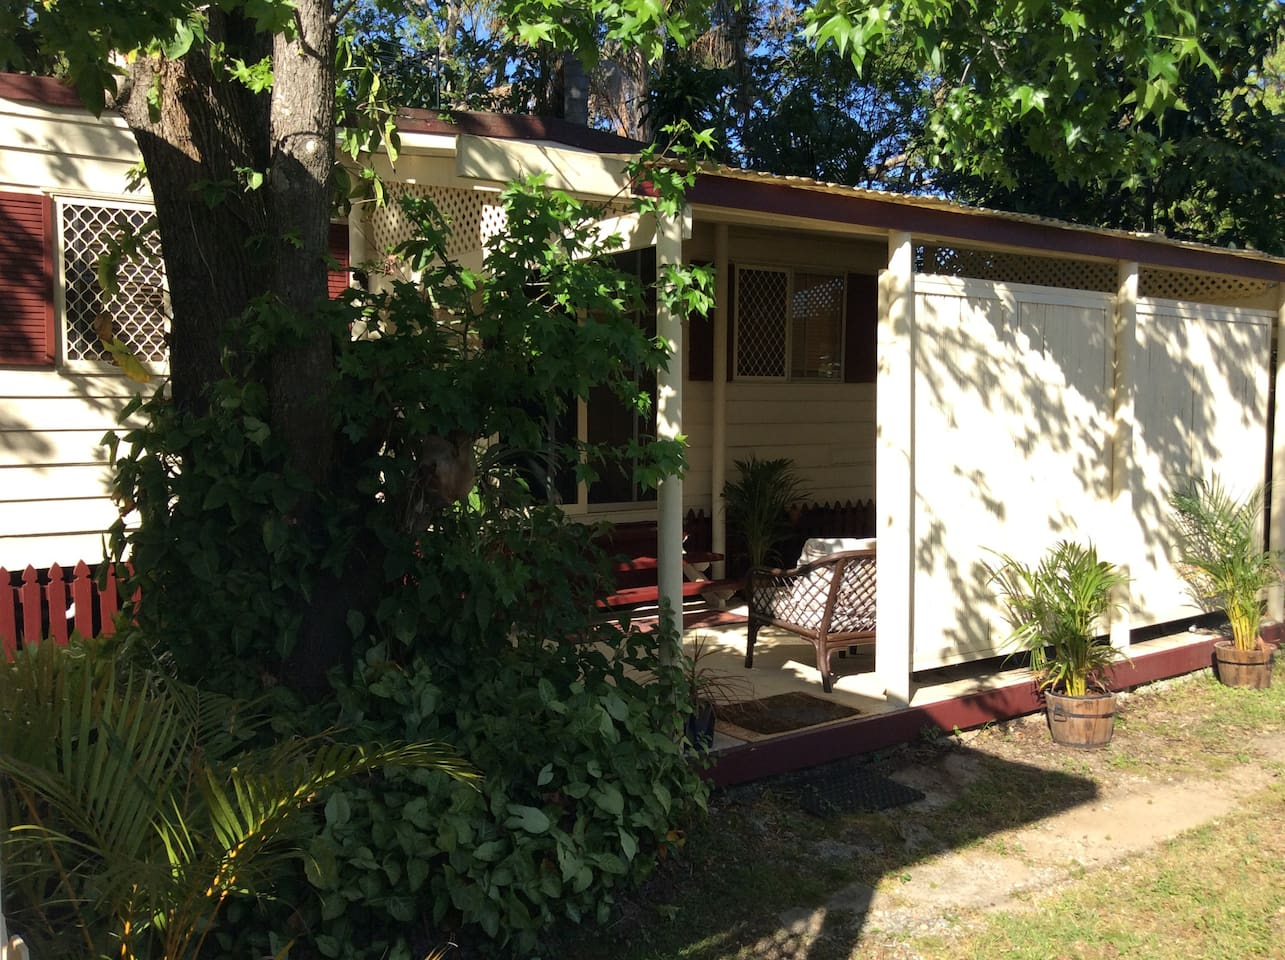 Fully Self Contained Cabin. 2 day minimum stay.